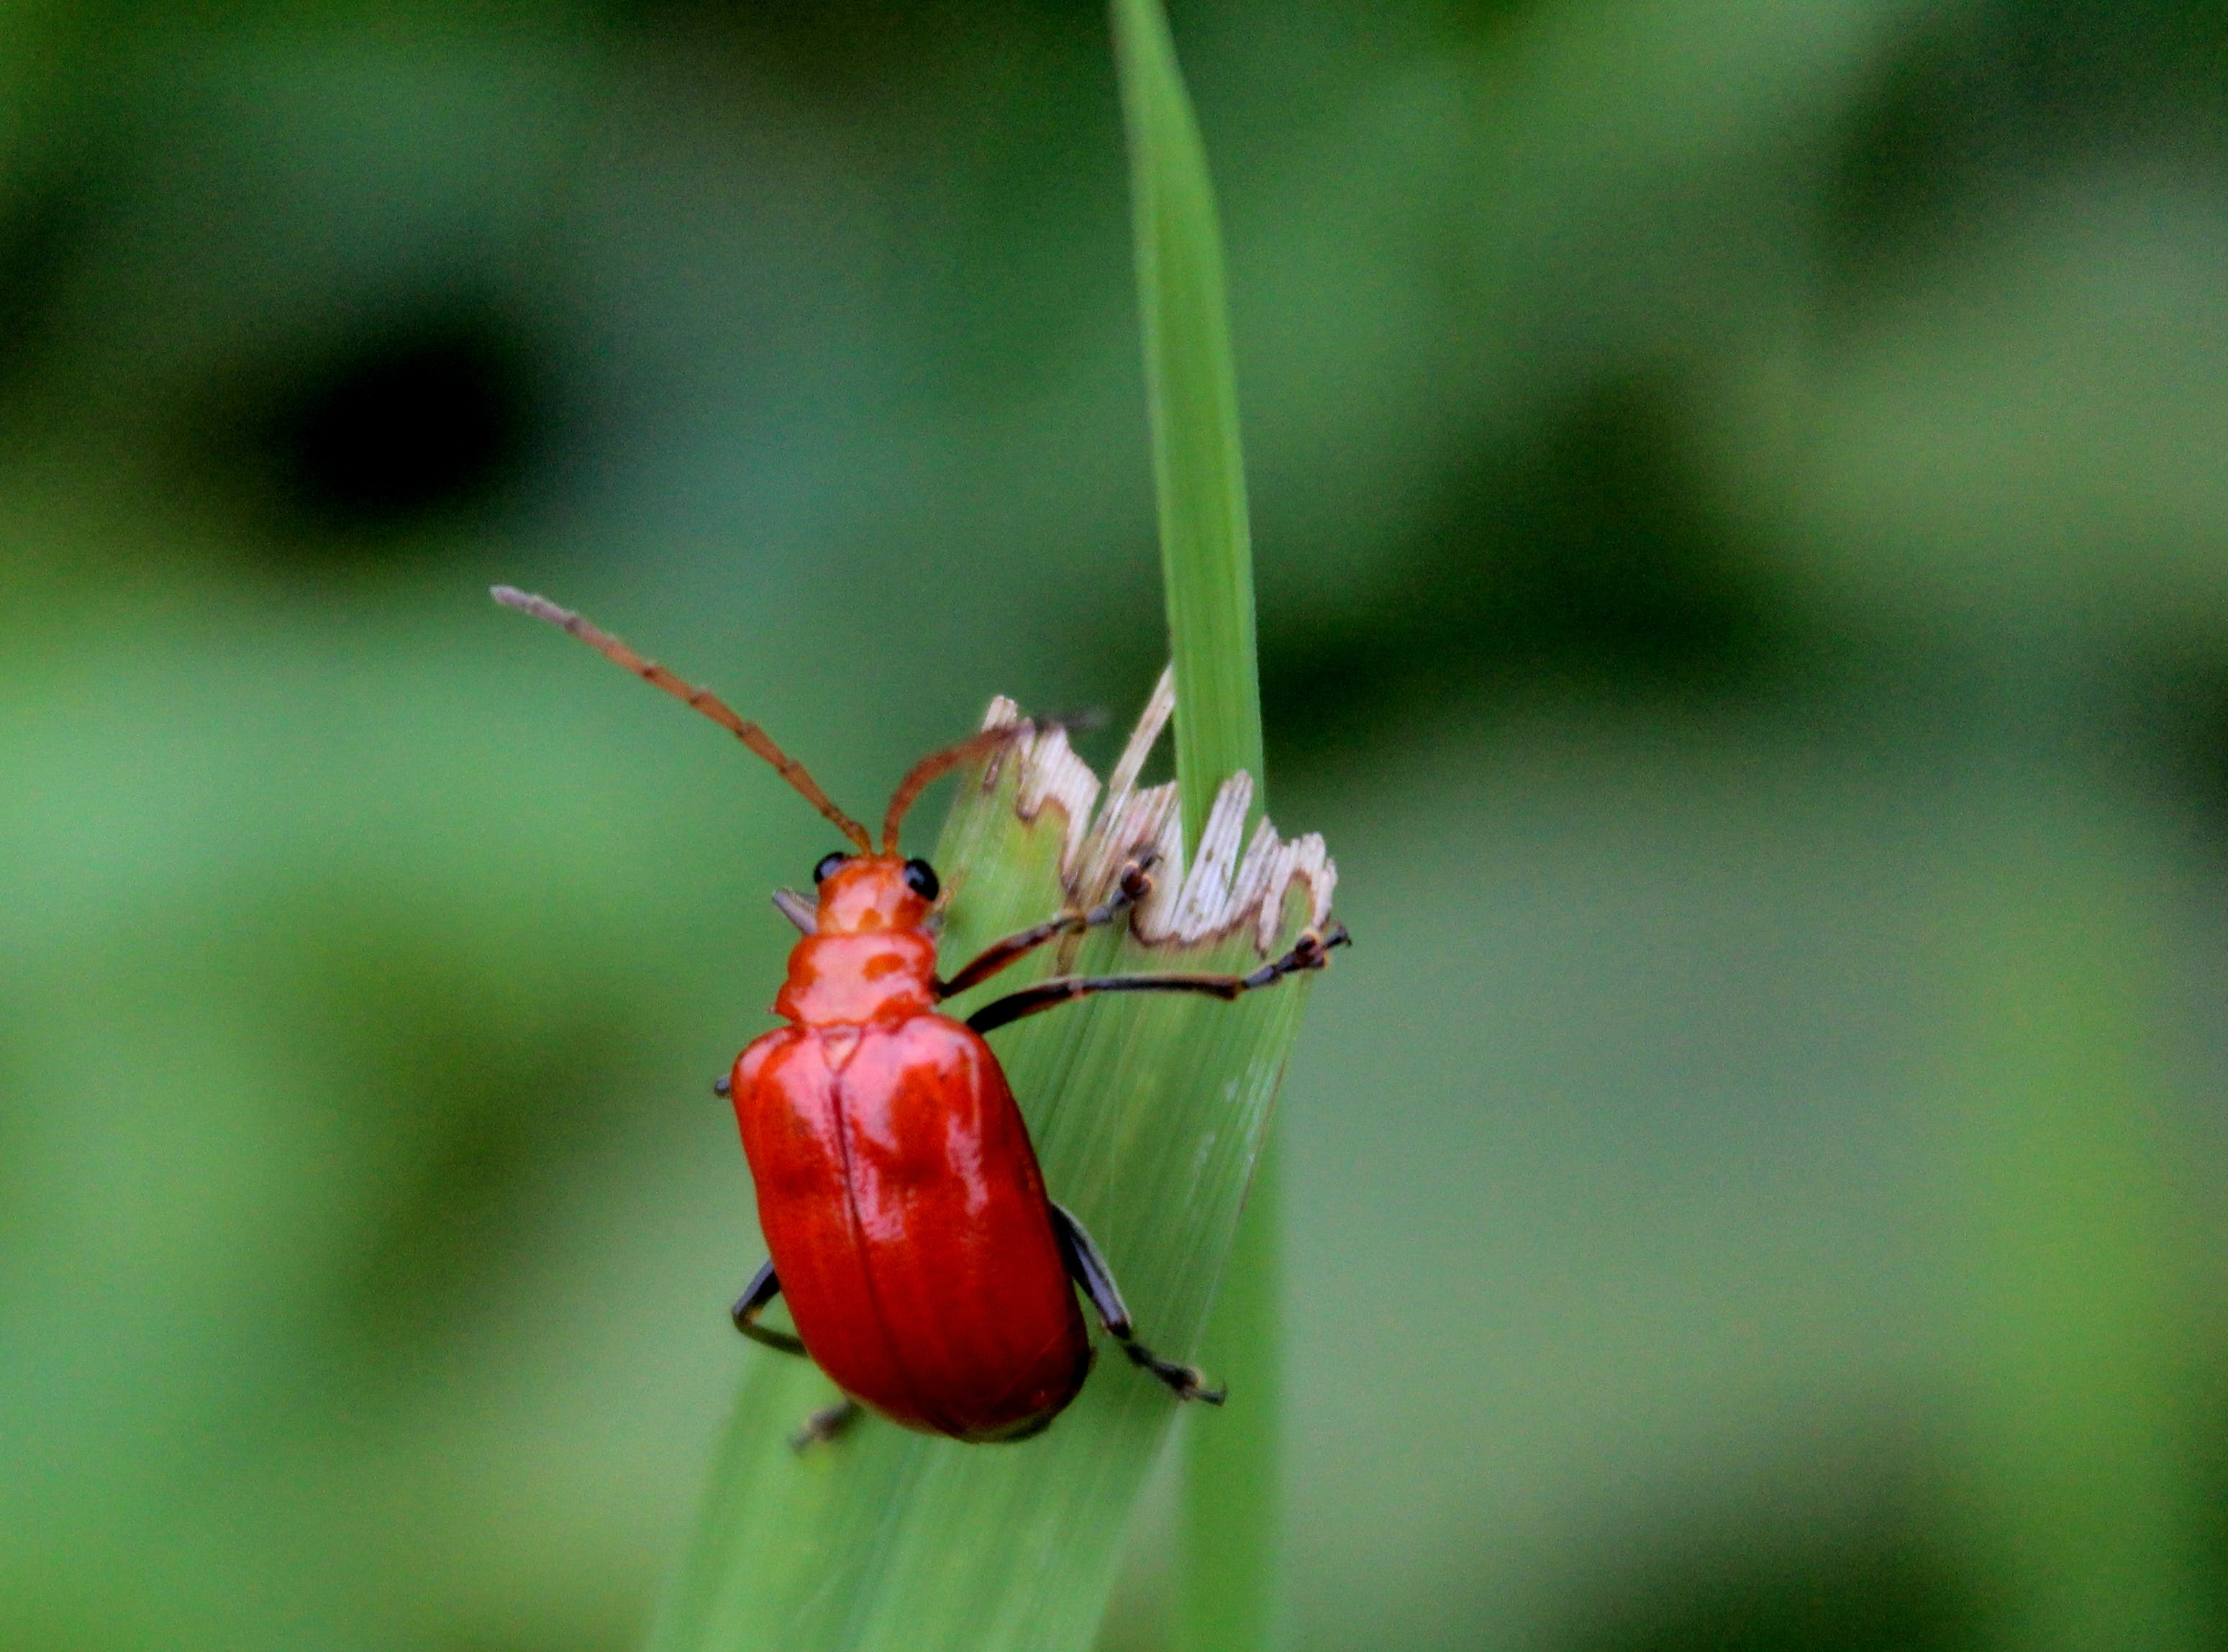 Red Beetle Perched on Green Leaf